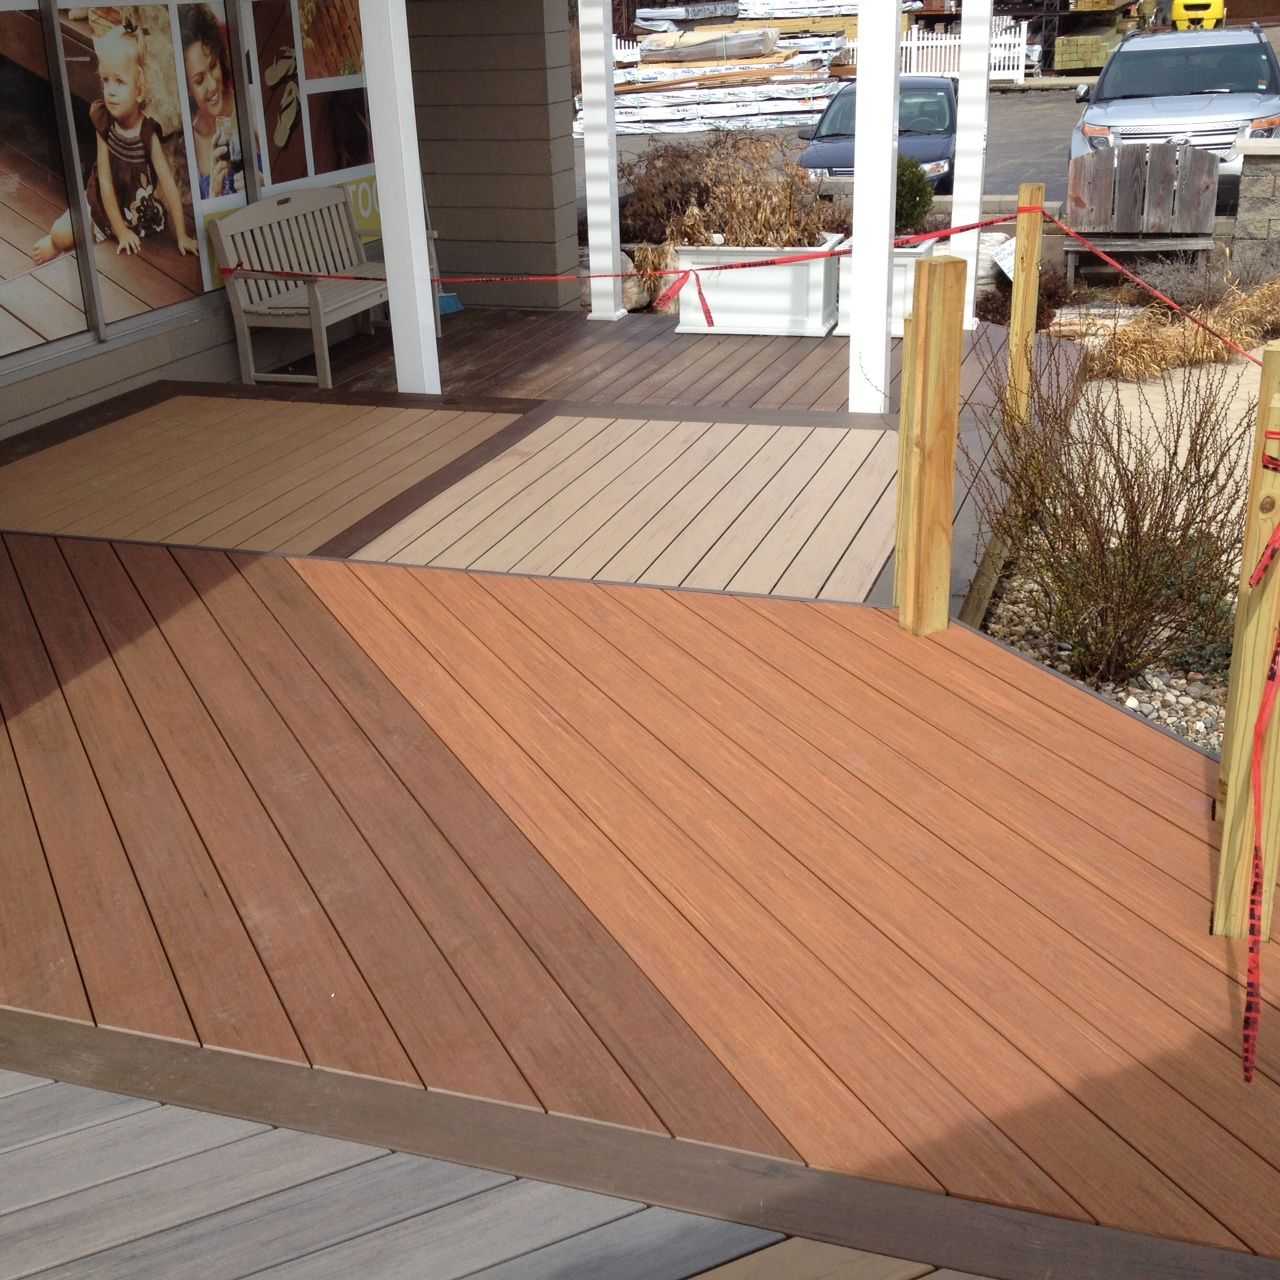 Decking Panels Tongue And Groove Blue Composite Deck Bmw Decking Panels Wpc Epoch